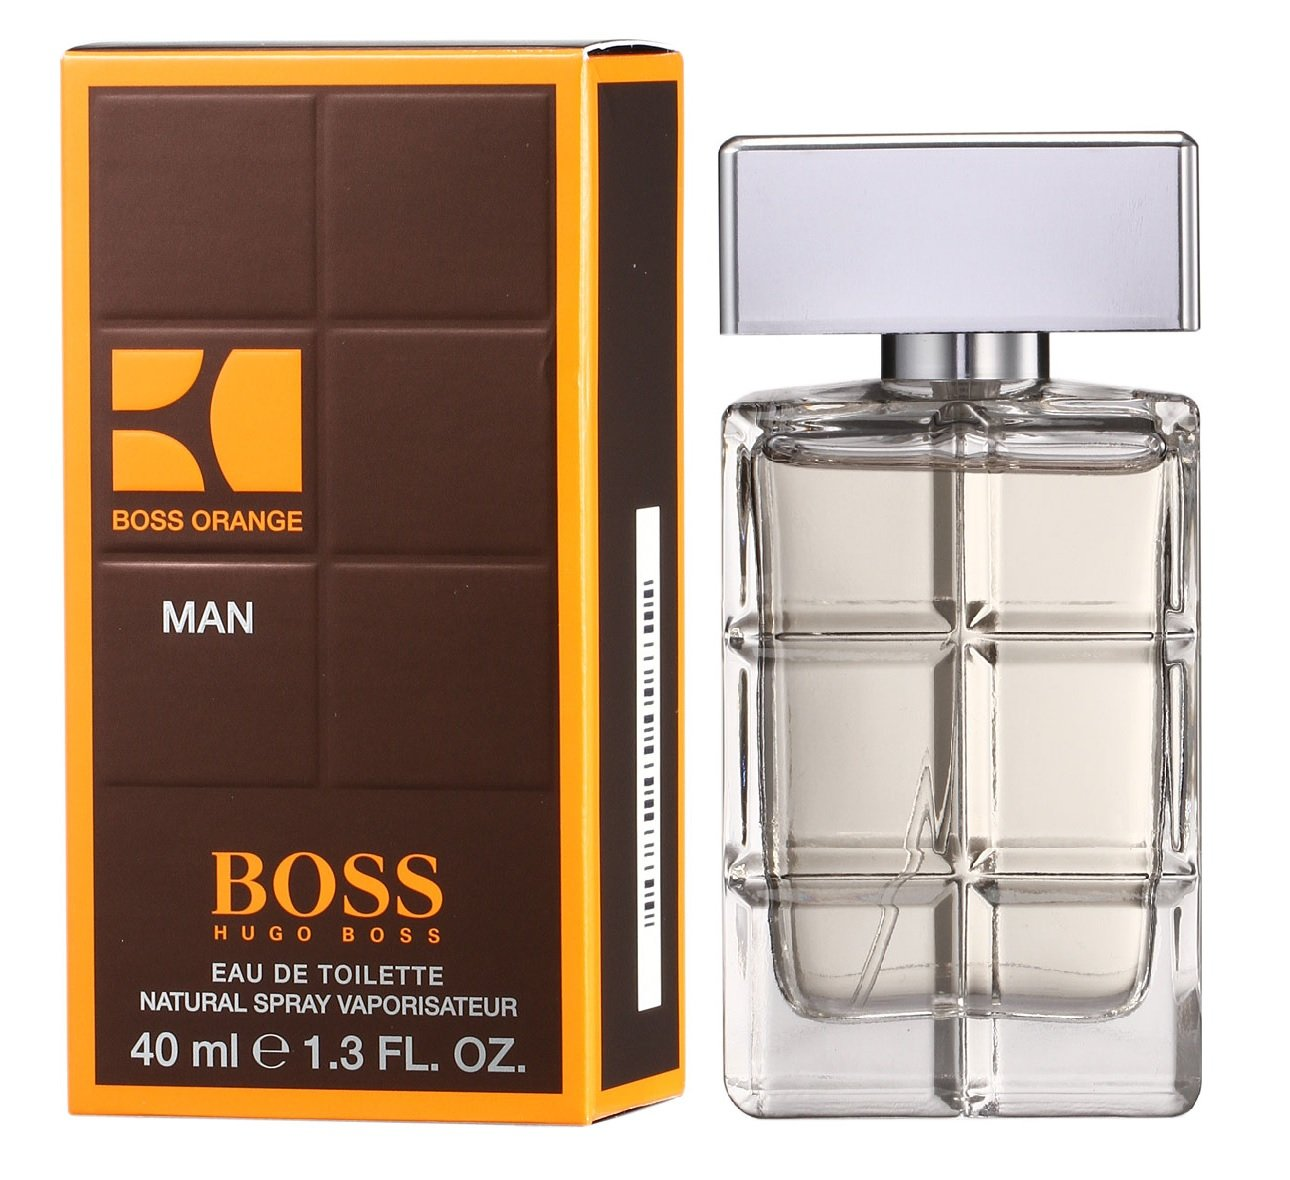 BOSS ORANGE MAN EDT 100 VPO Hugo Boss 205648 13461